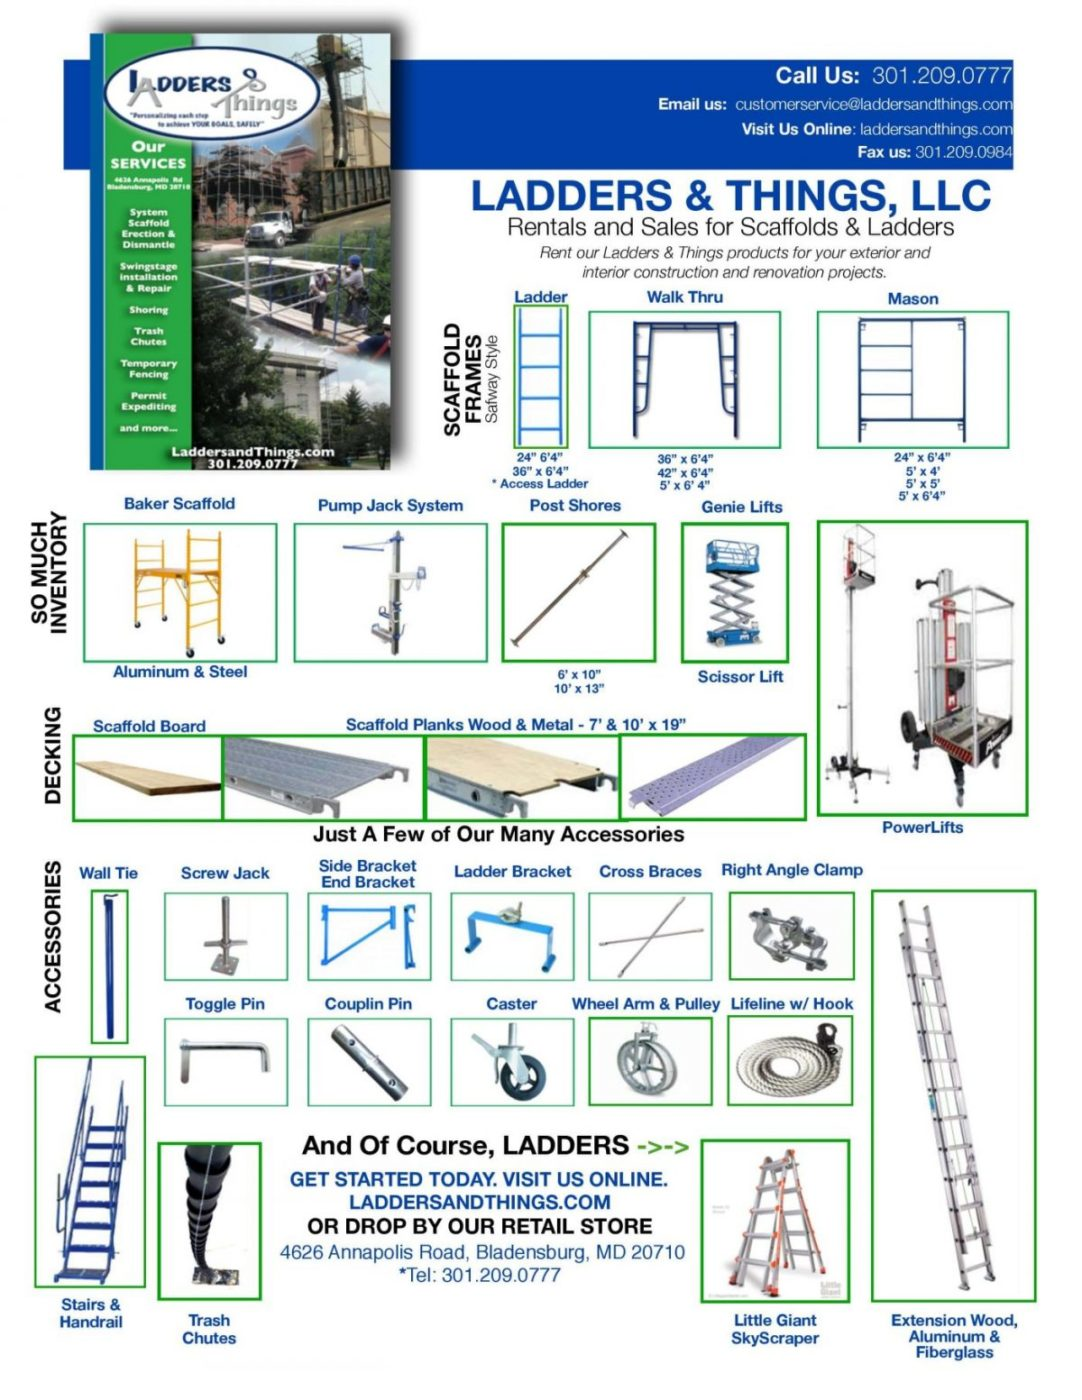 Rentals sales brochure ladders things llc for A frame ladder safety tips